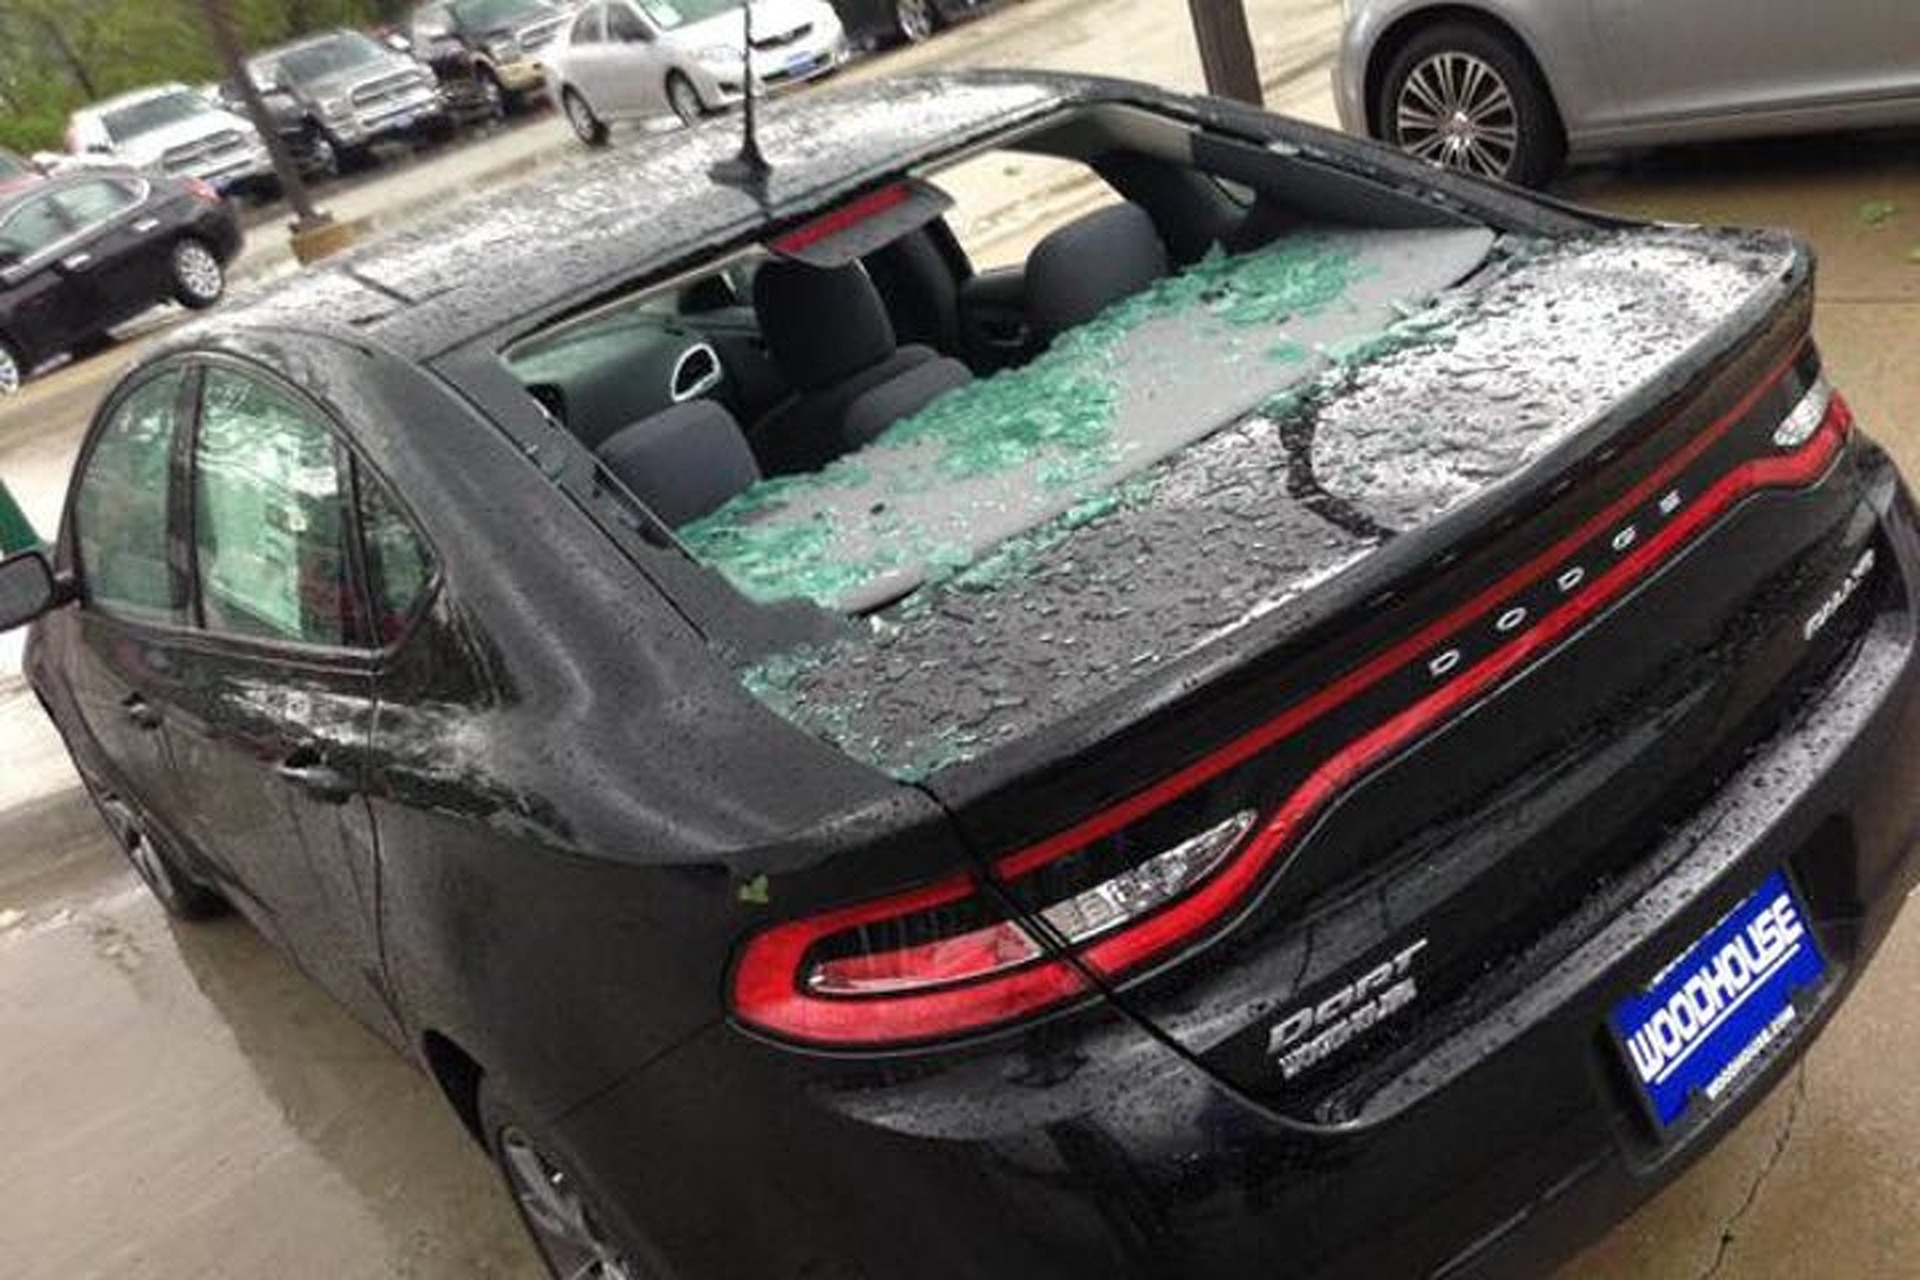 A Nebraska Car Dealer Had 4,500 Cars Damaged by Hail: $152M in Losses